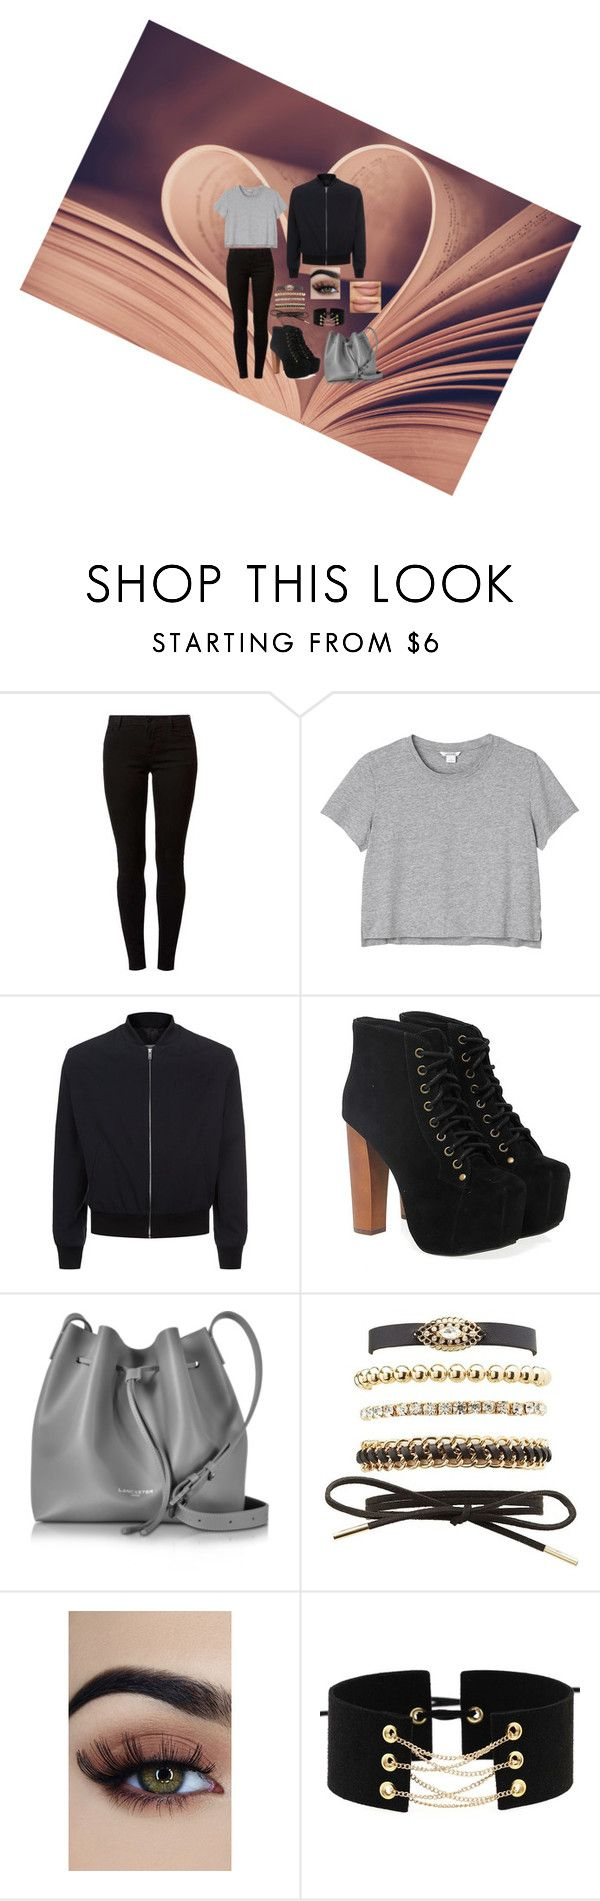 """SPOTKANIE"" by laska800 on Polyvore featuring Dorothy Perkins, Monki, Maison Margiela, Jeffrey Campbell, Lancaster and Charlotte Russe"